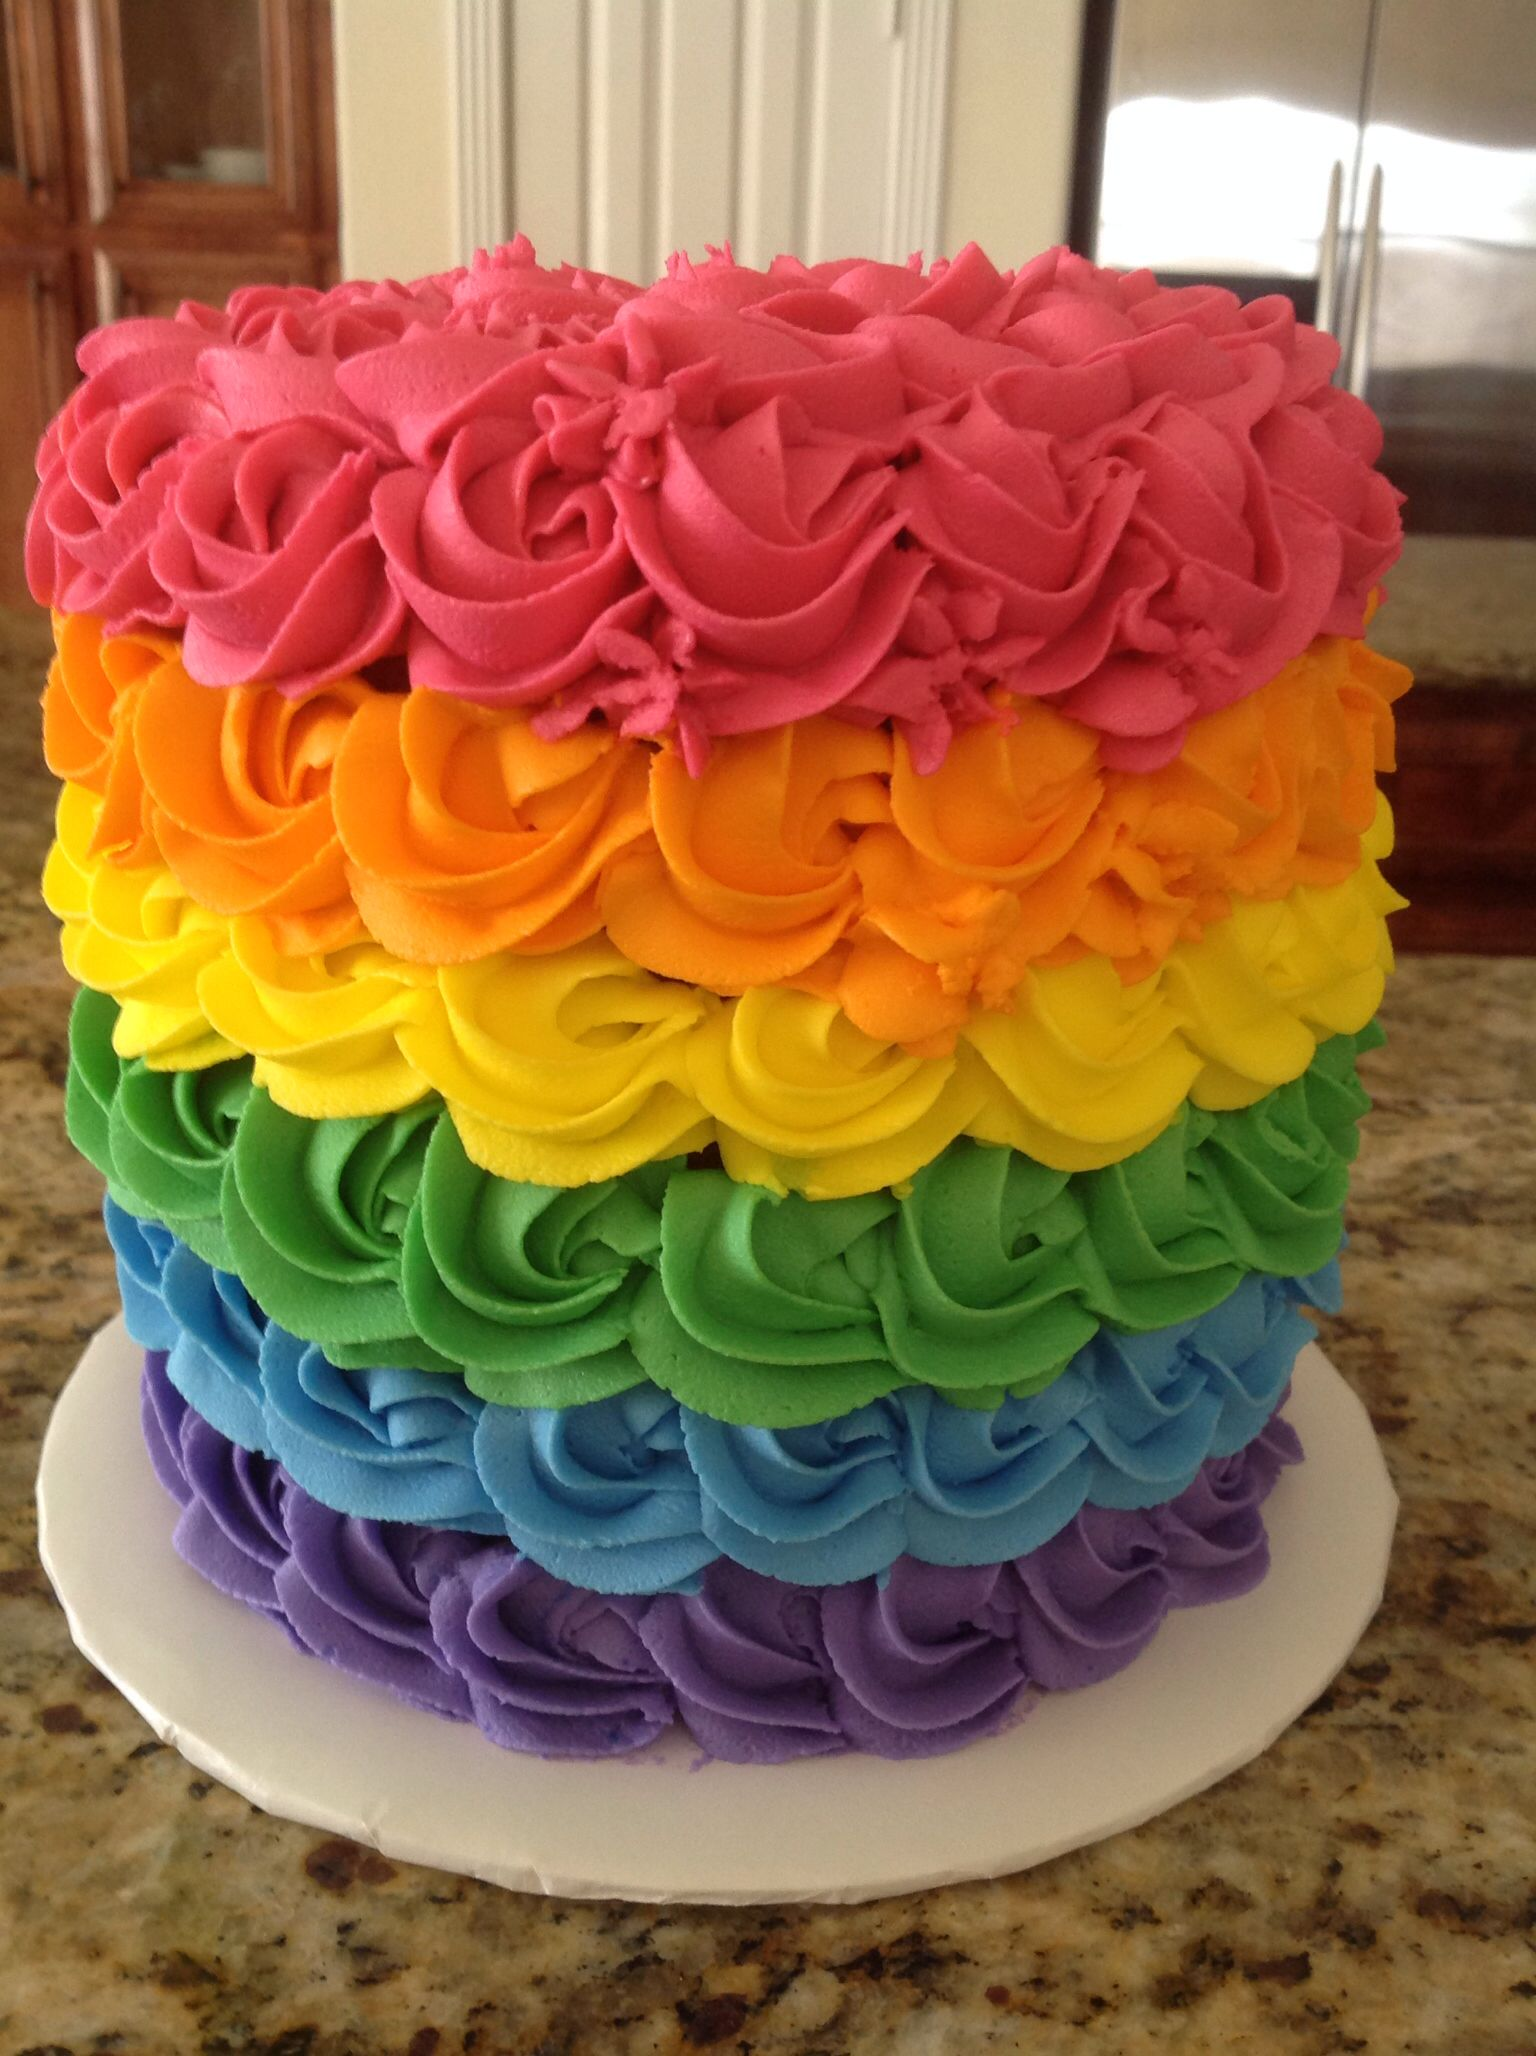 Beautiful Vanilla Cake Images : Another beautiful and colorful rainbow cake perfect for a ...